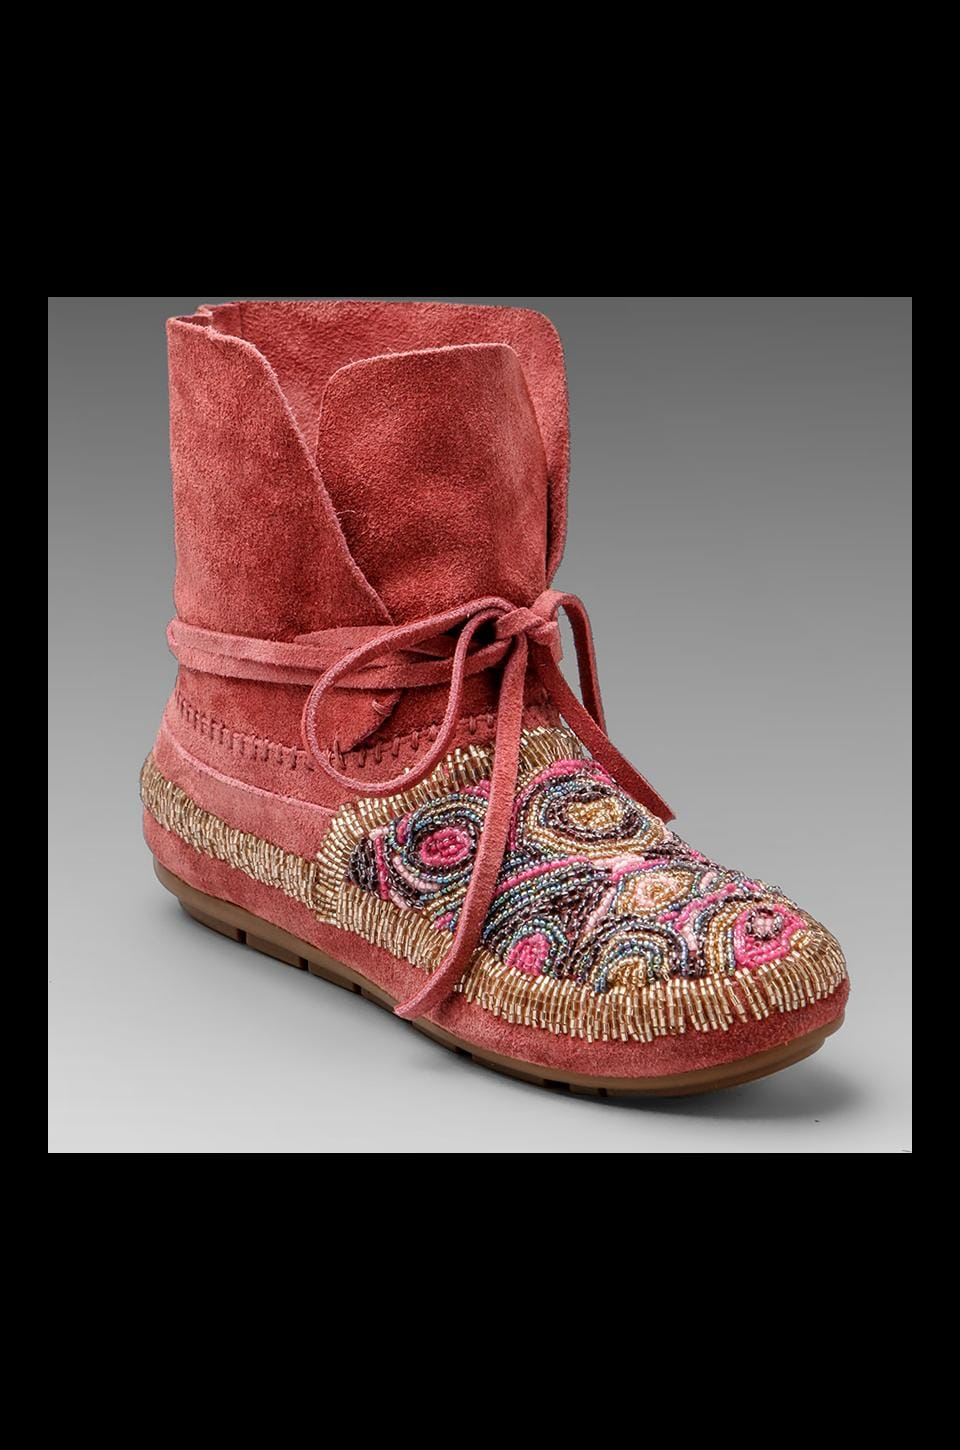 House of Harlow Mallory Moccasin in Pink